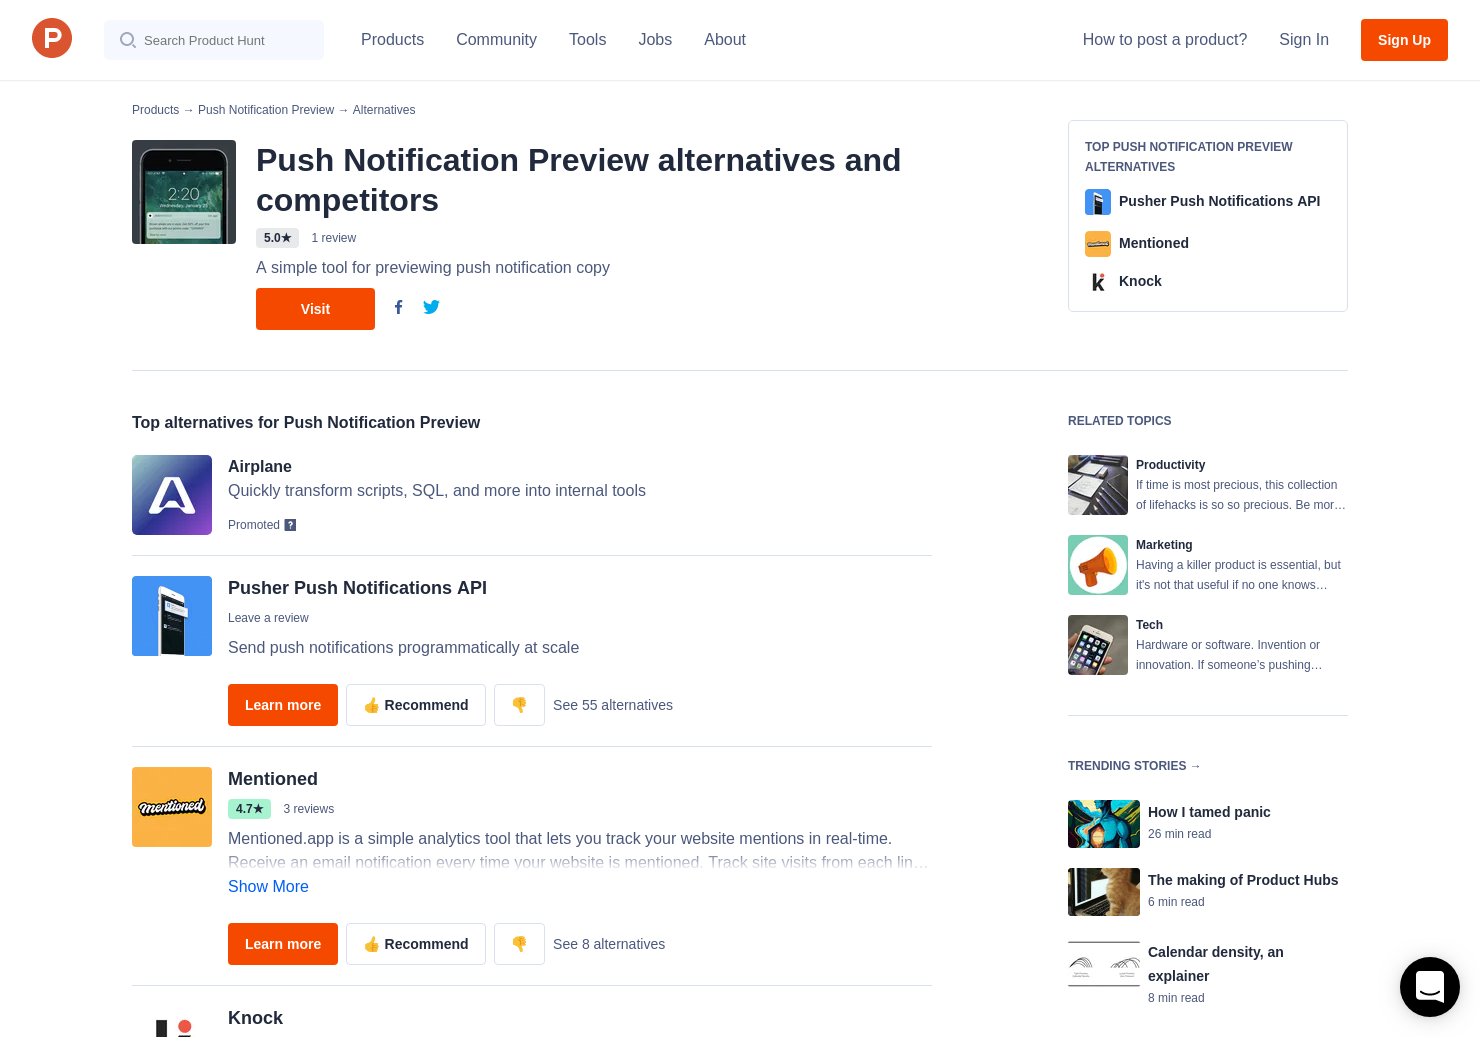 13 Alternatives to Push Notification Preview | Product Hunt